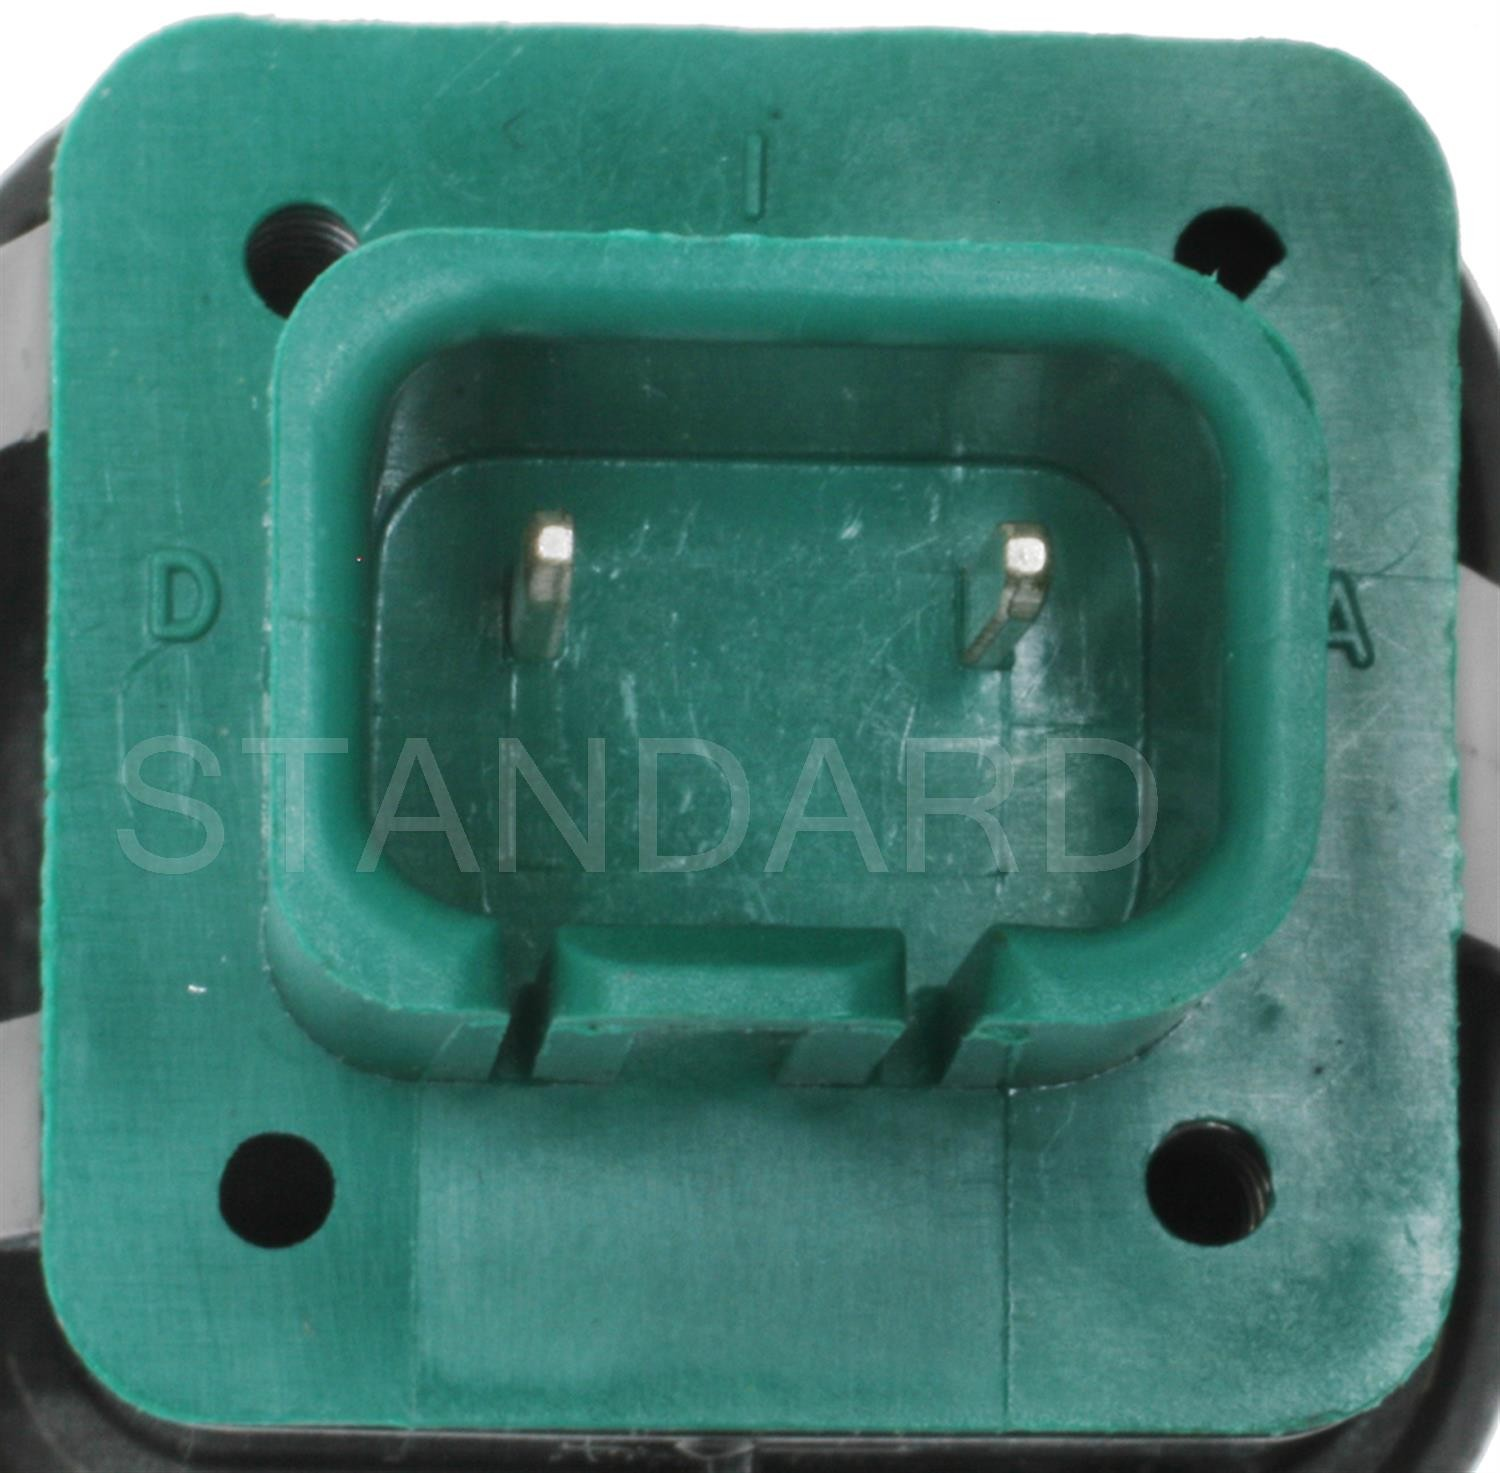 hight resolution of 2004 chevrolet impala trunk lid release switch